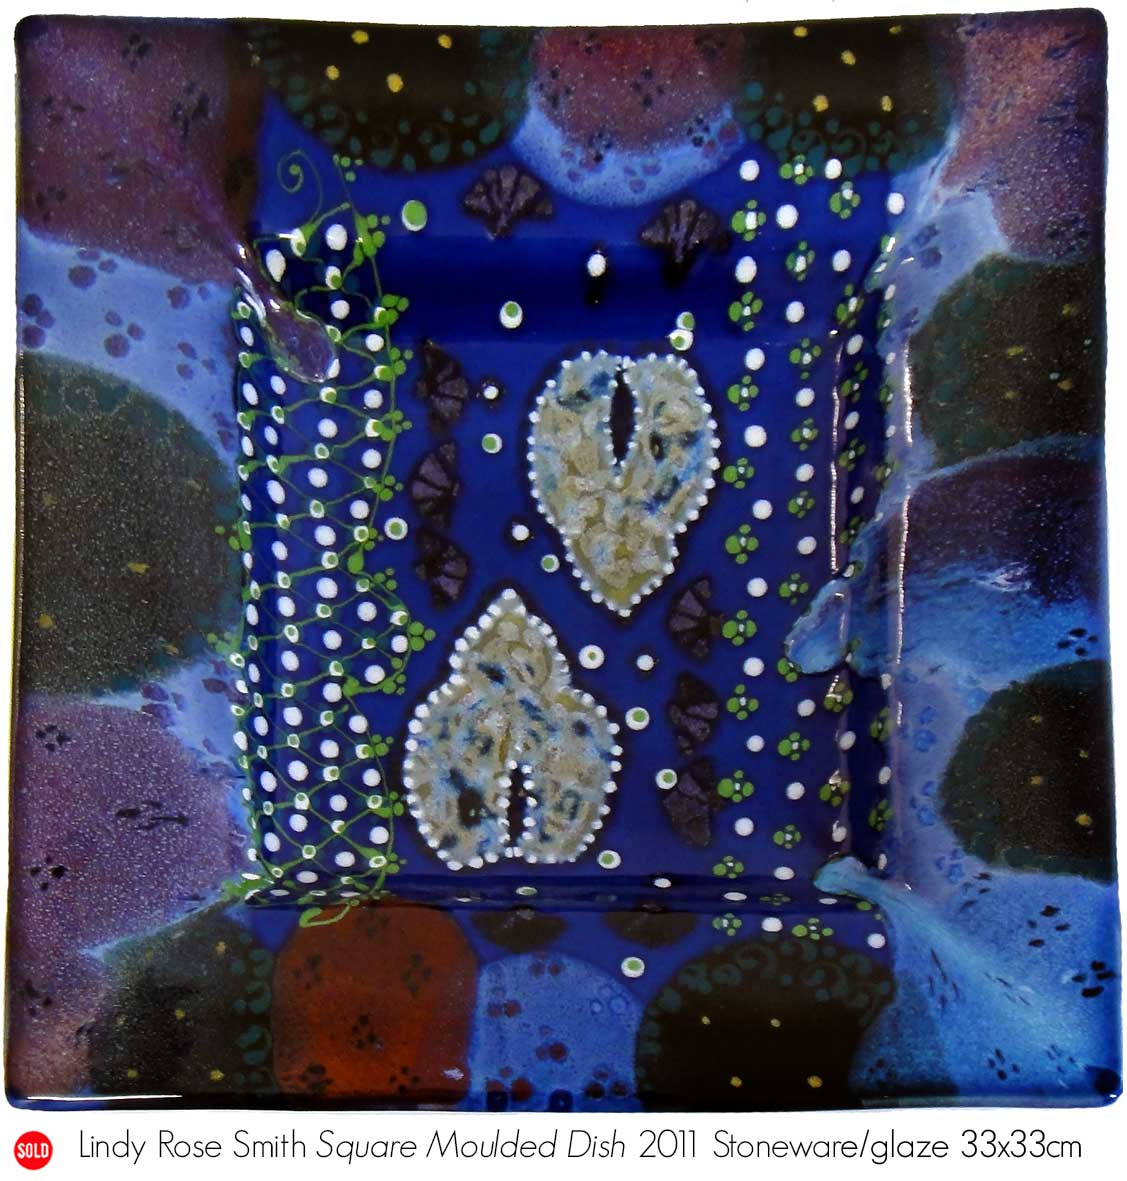 Venita Salnajs - Collector's Choice 2011. Artsite Gallery,  26 November - 11 December 2011.